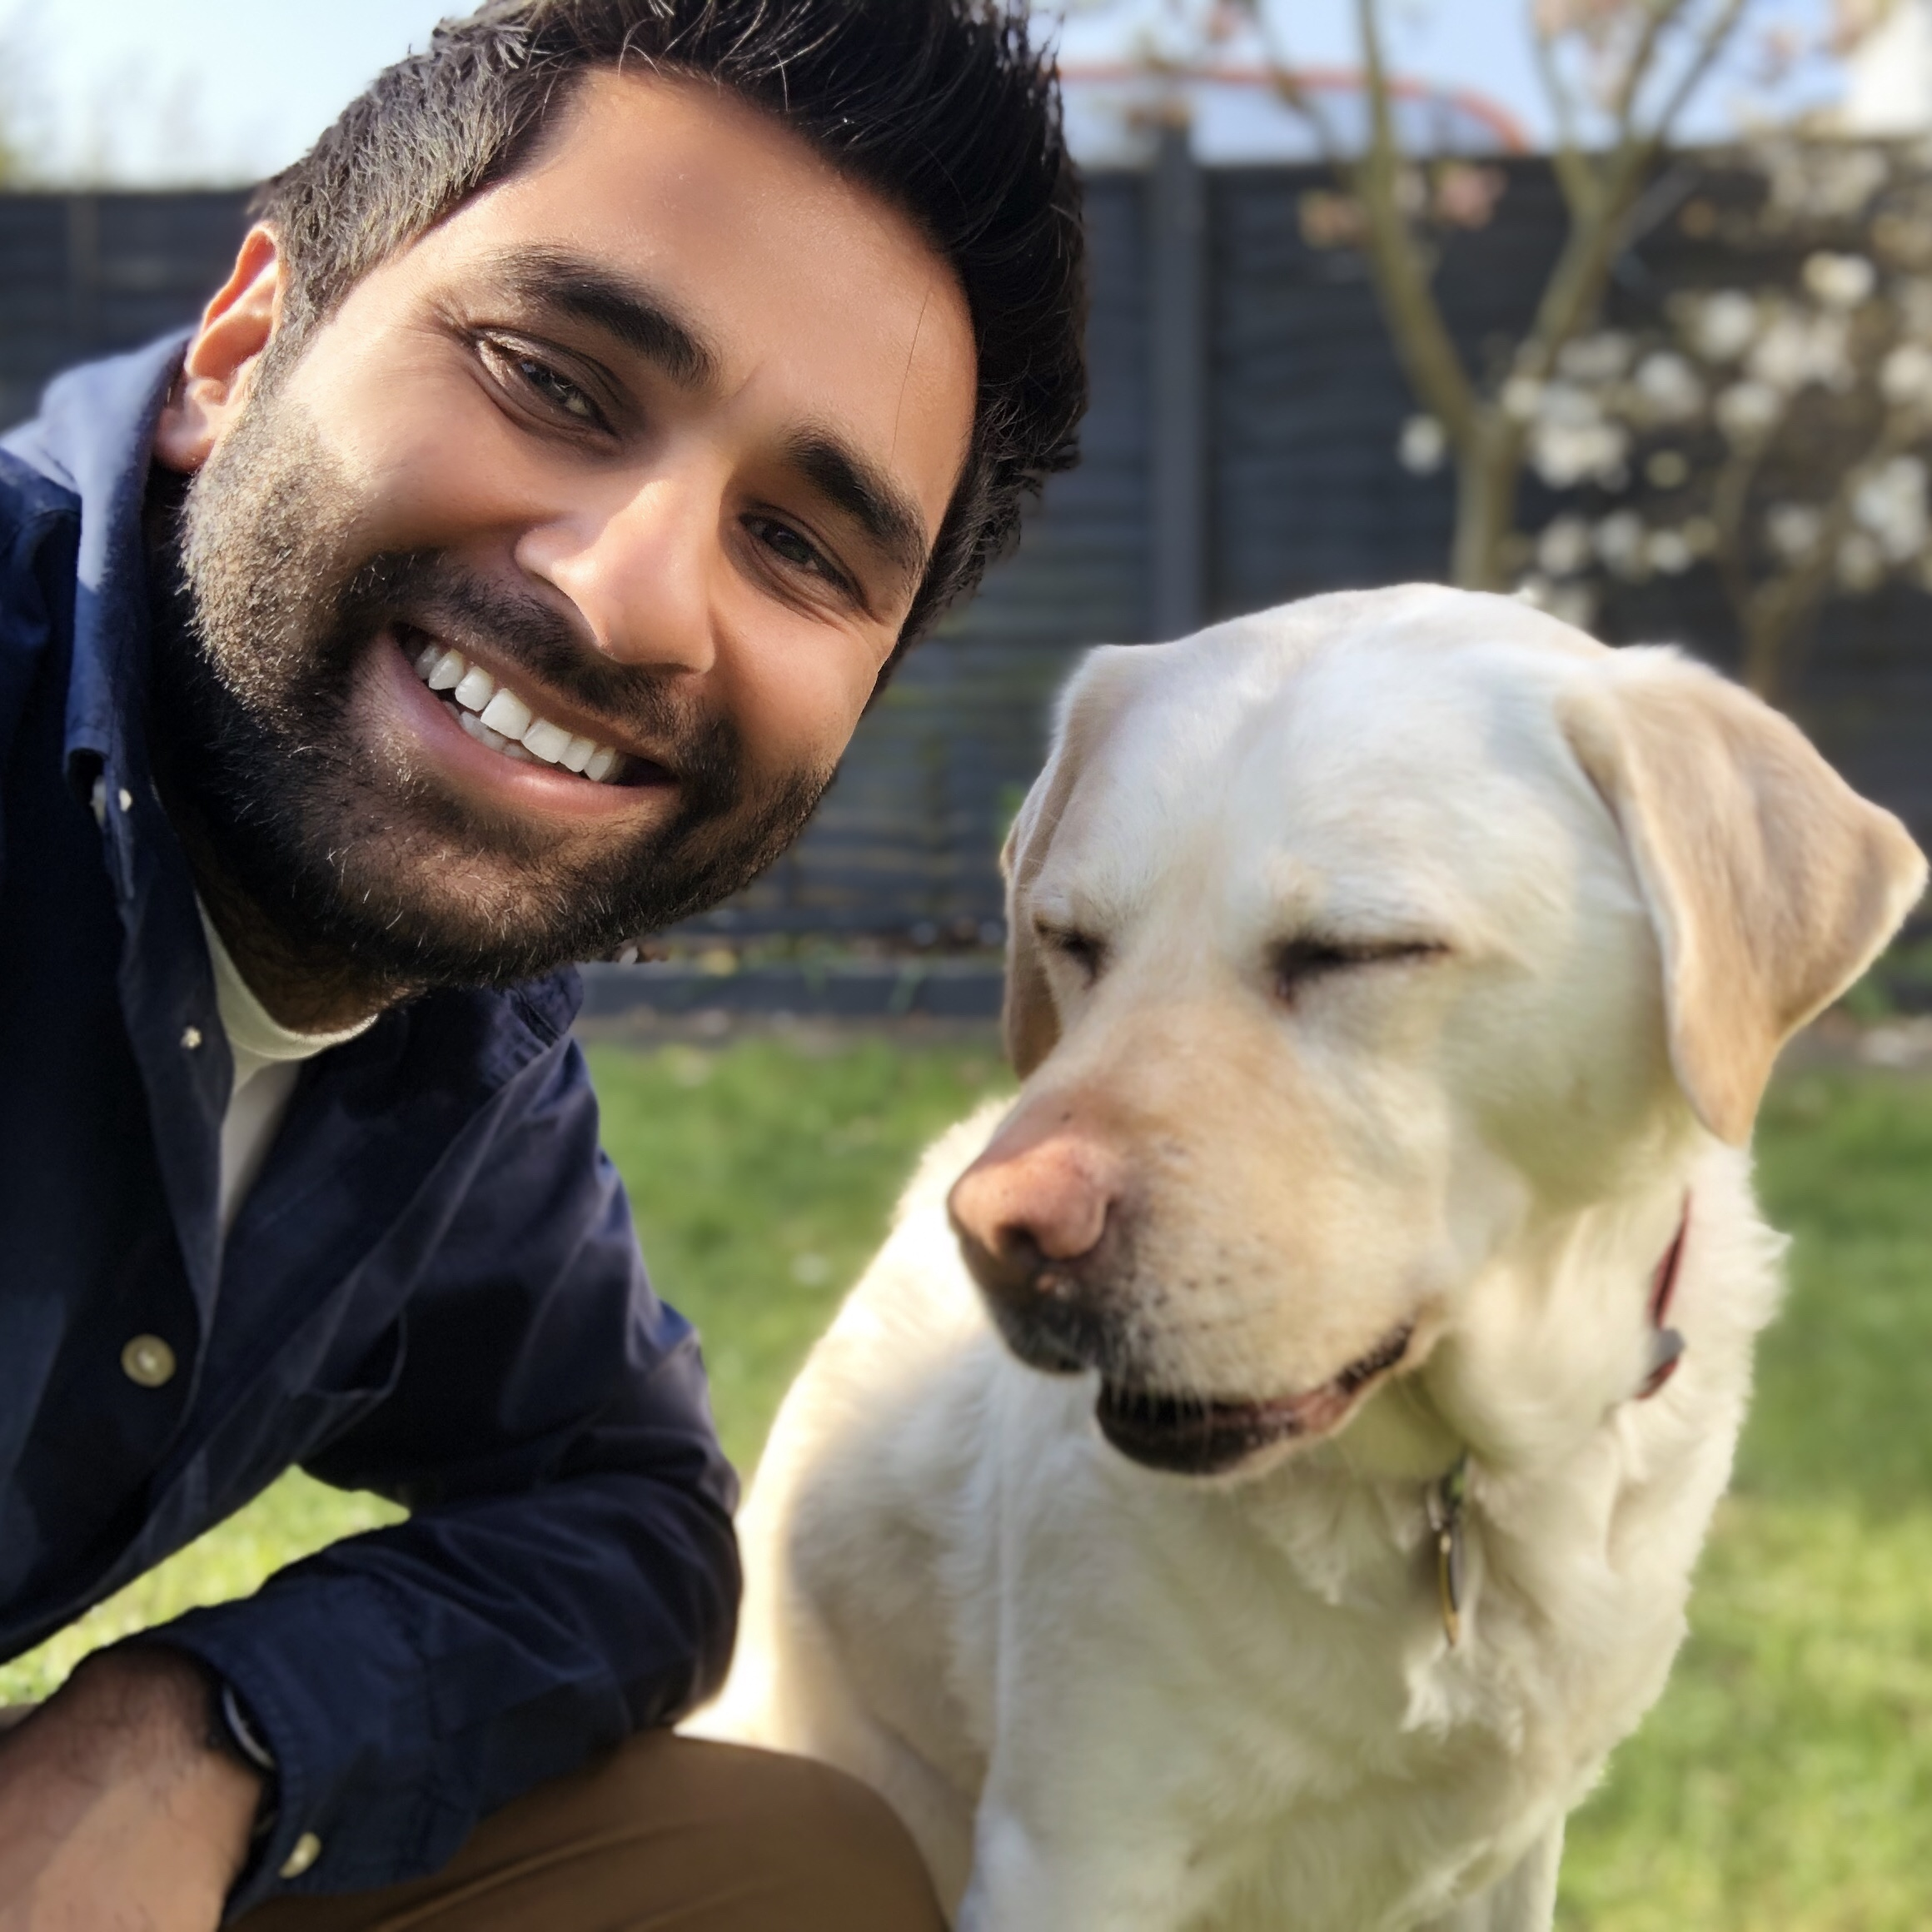 A picture of a man smiling at the camera next to his guide dog.